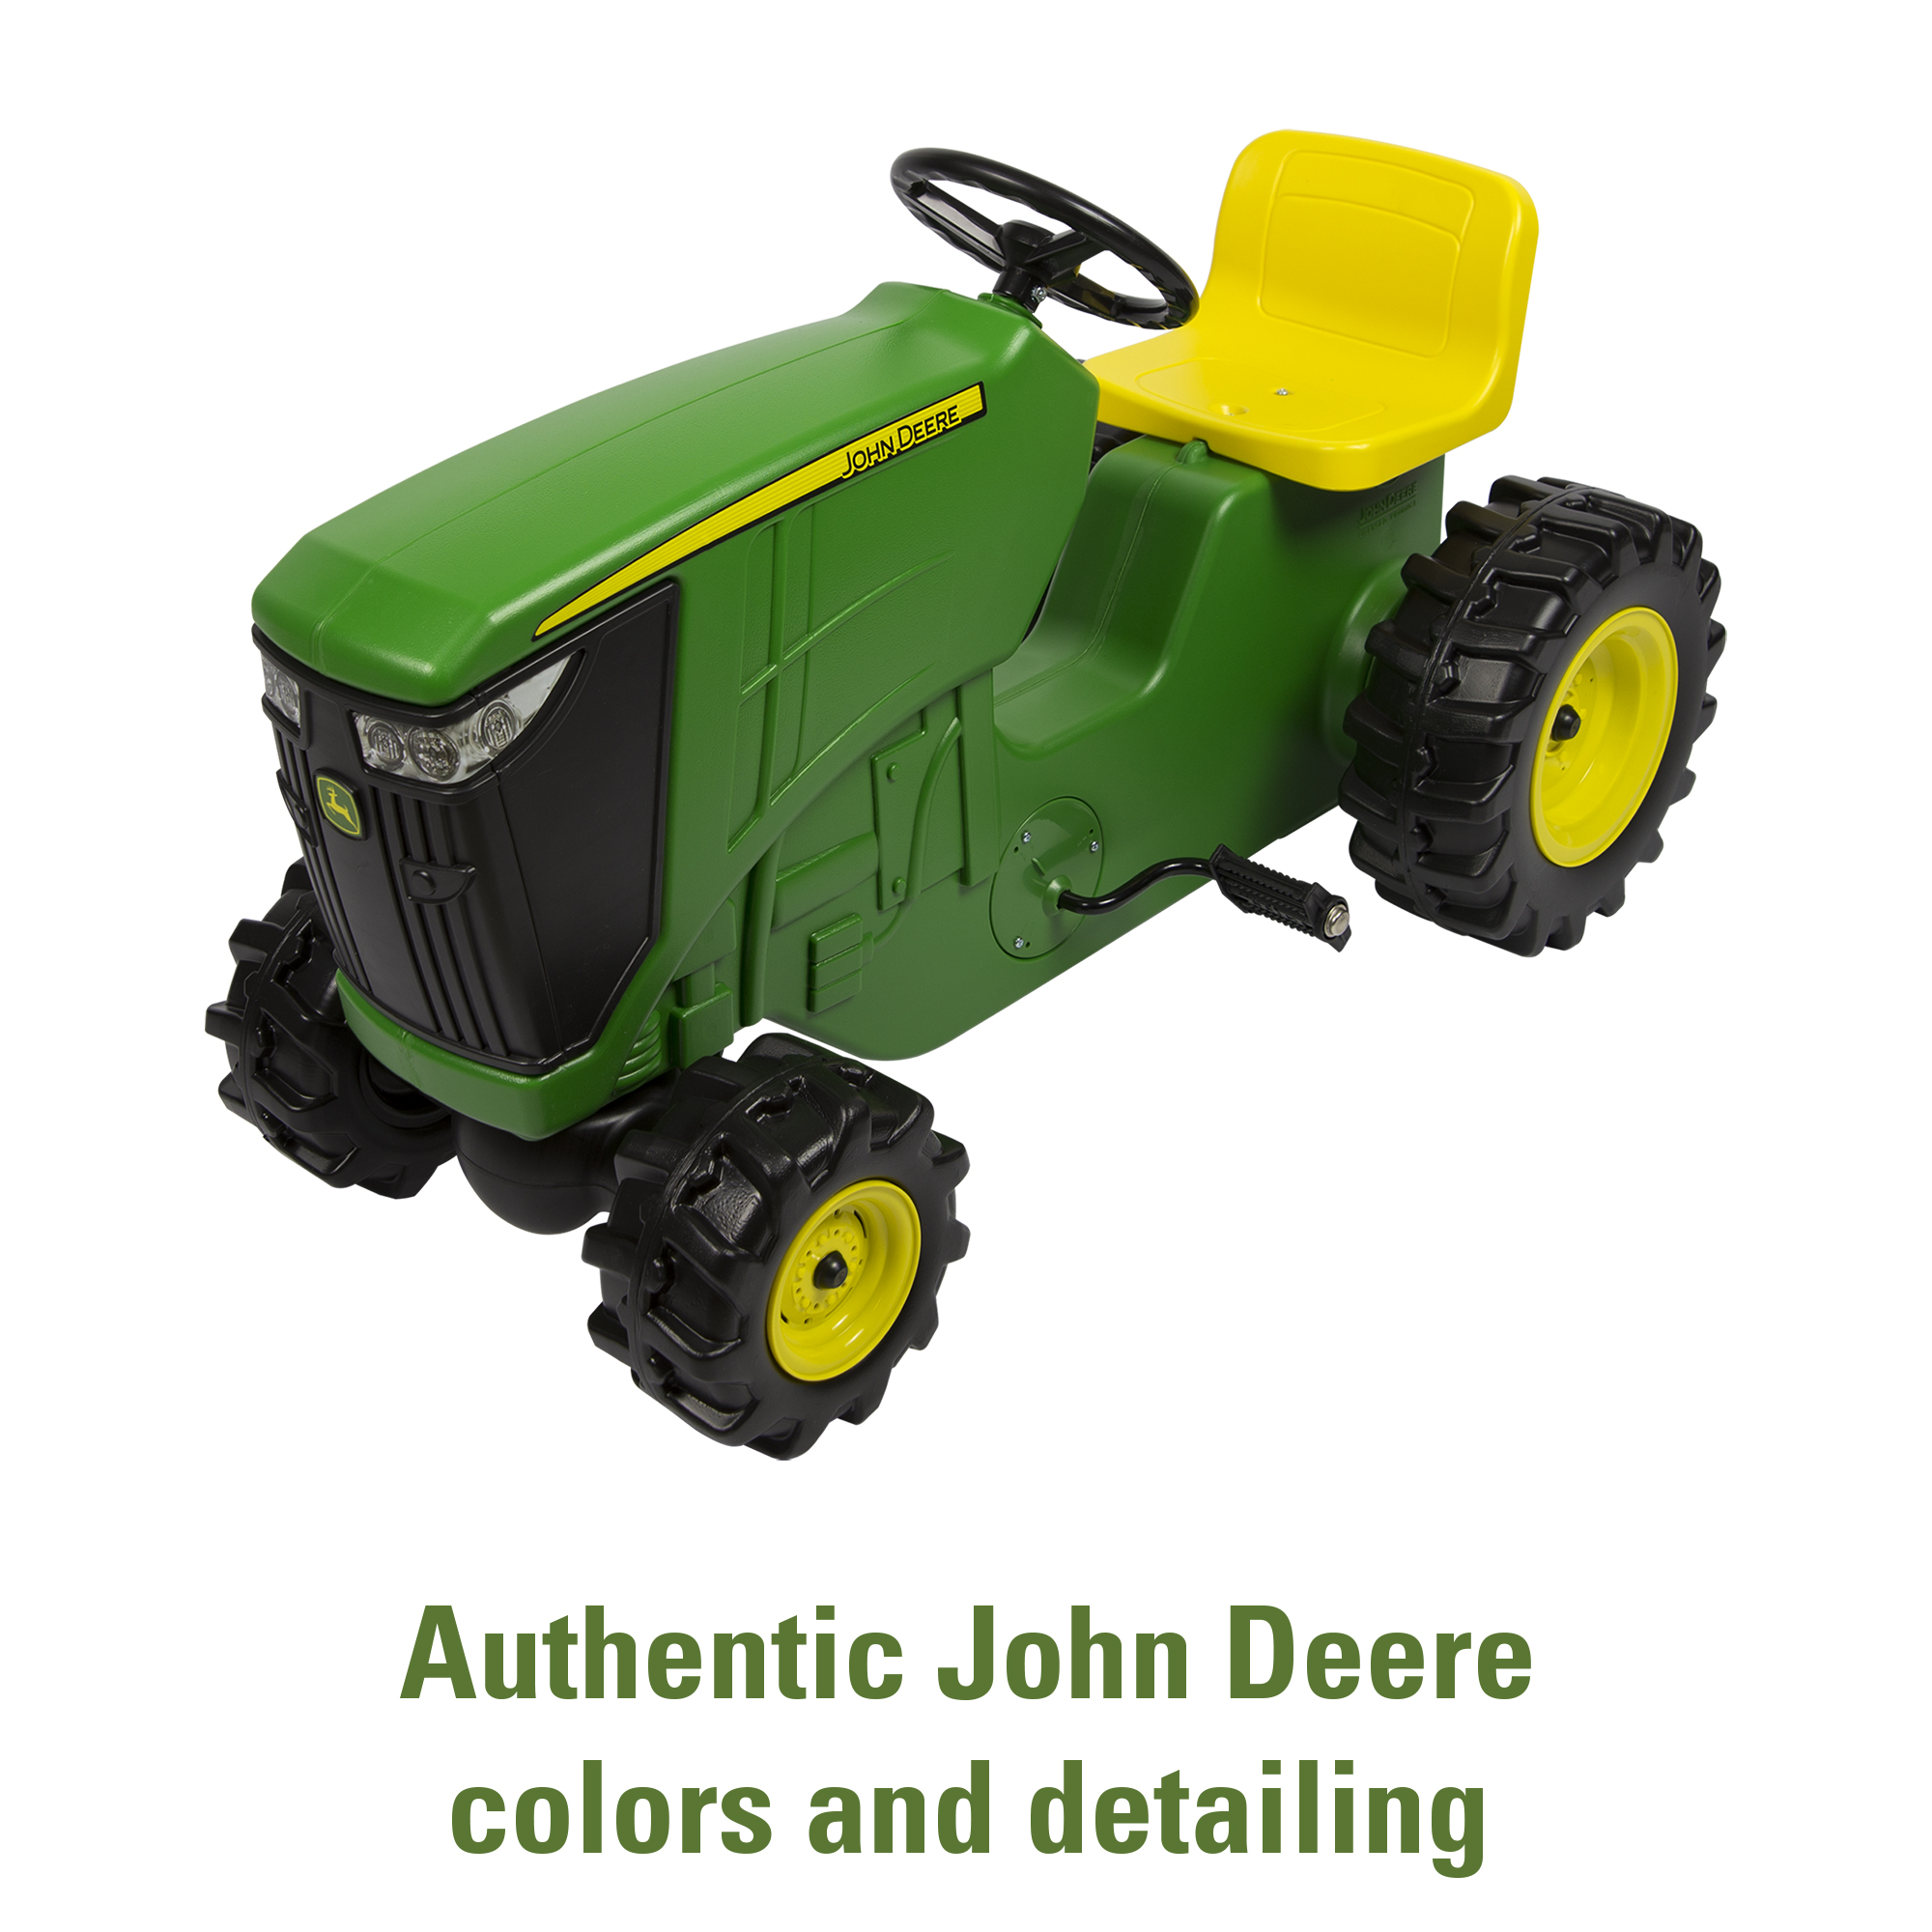 John Deere Pedal Powered Tractor Kids Ride On Toy Tractor Green